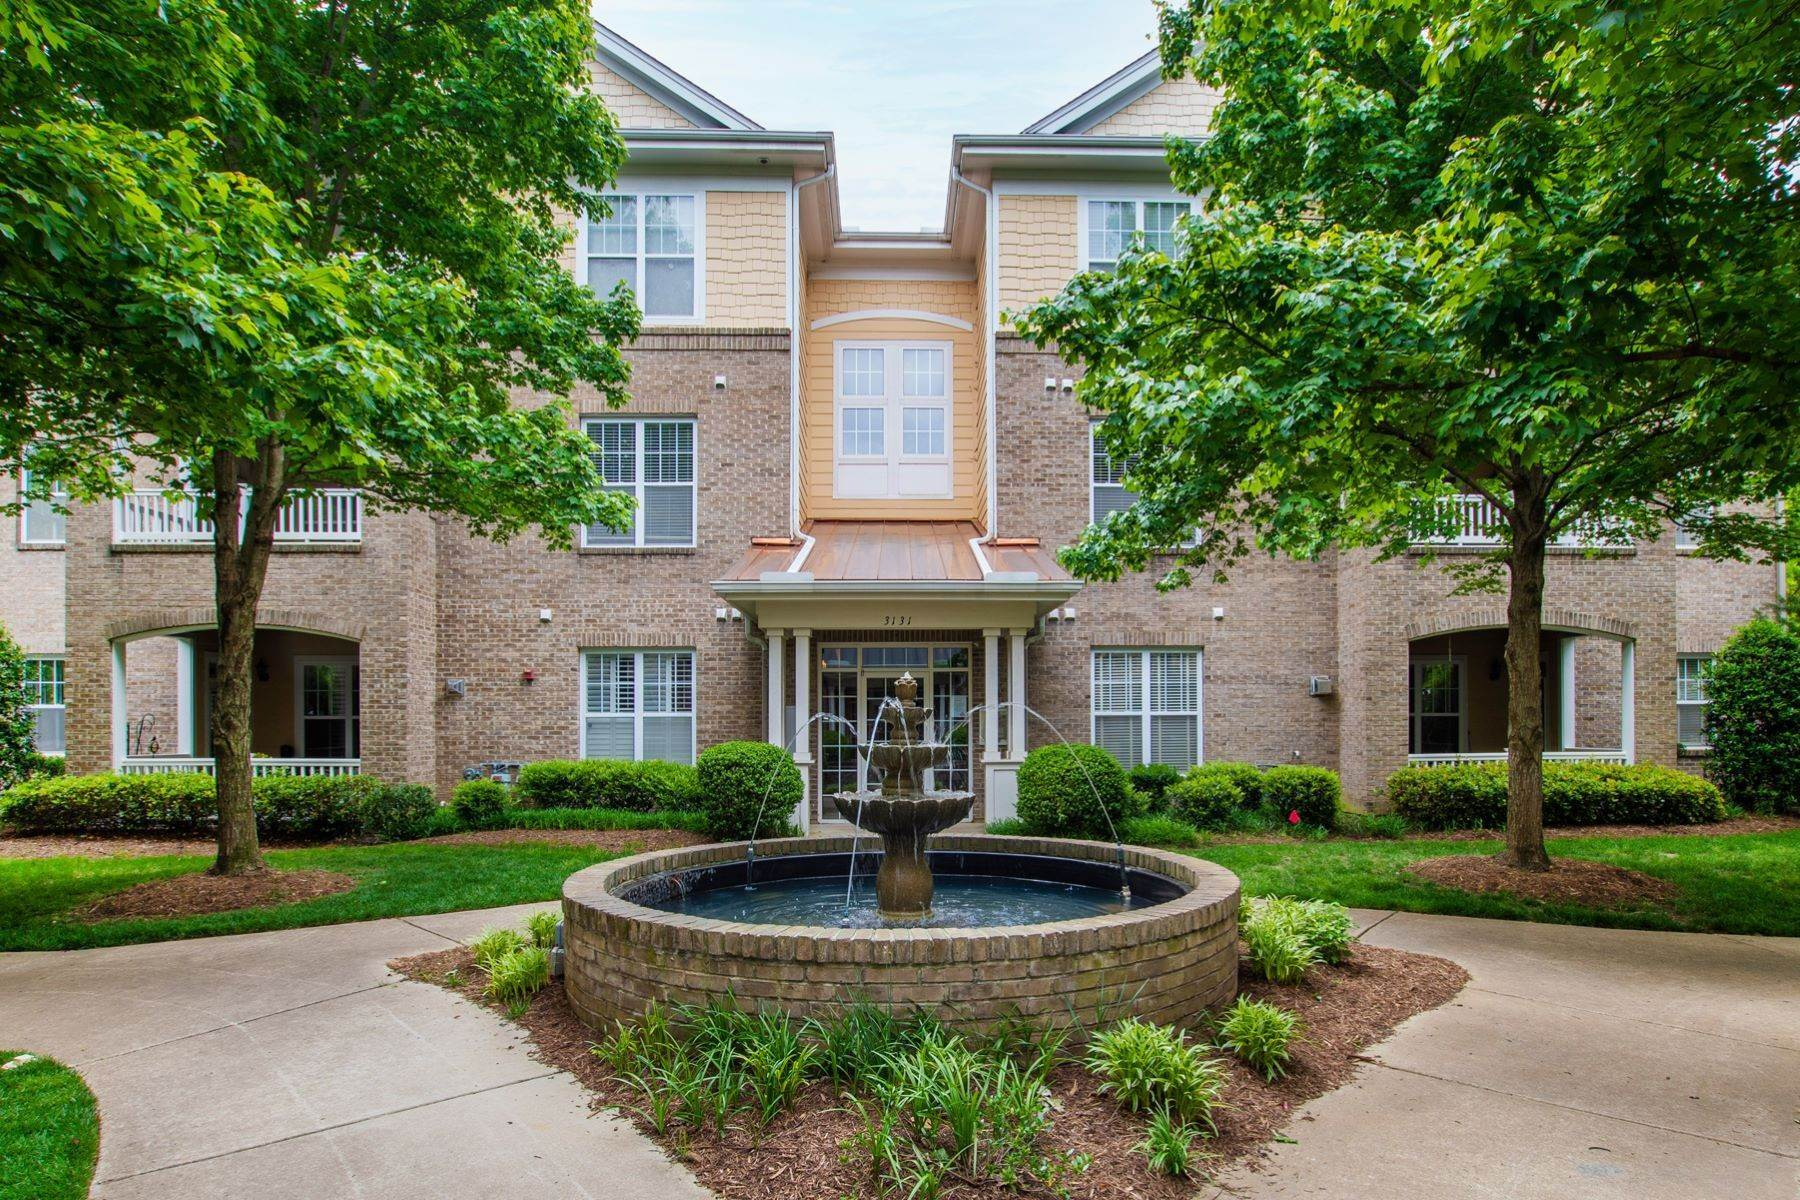 Condominiums for Sale at Move-In Ready End Unit Condo 3131 Hemlock Forest Circle, Unit 204 Raleigh, North Carolina 27612 United States